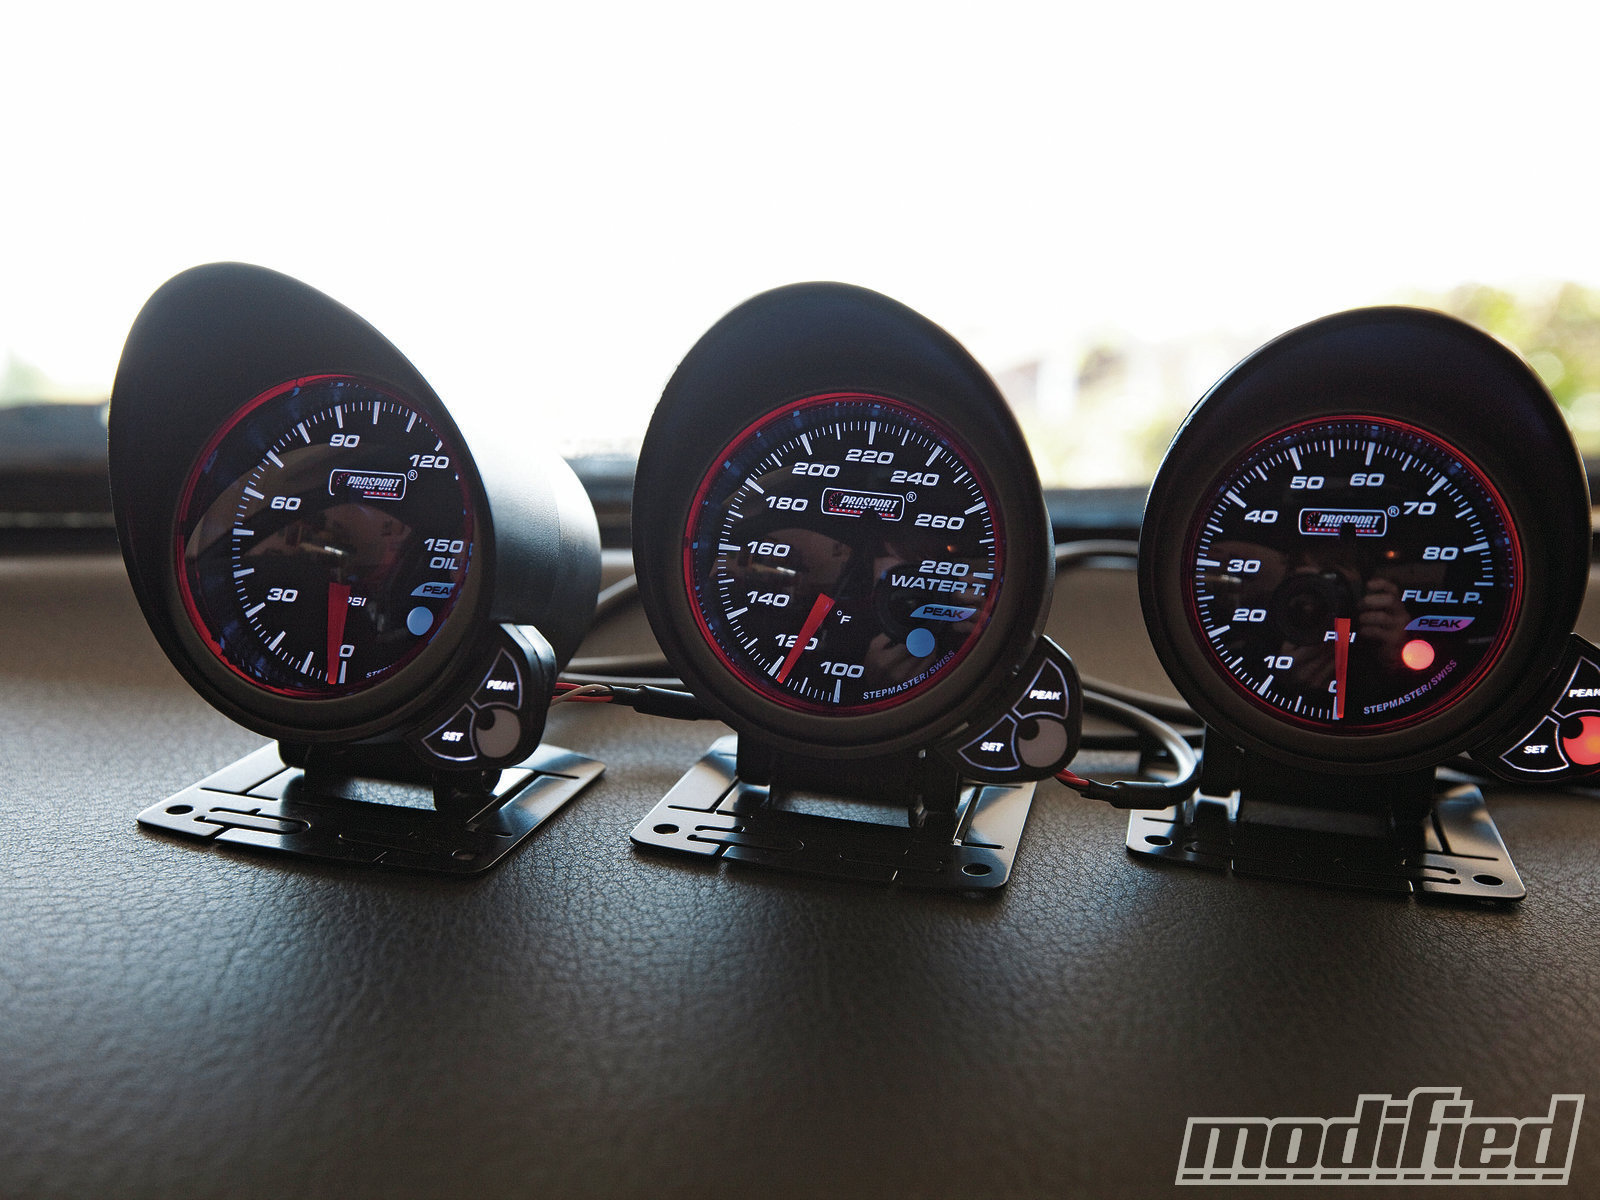 Remarkable Prosport 52Mm Halo Series Gauges Proving Grounds Modified Magazine Wiring 101 Orsalhahutechinfo